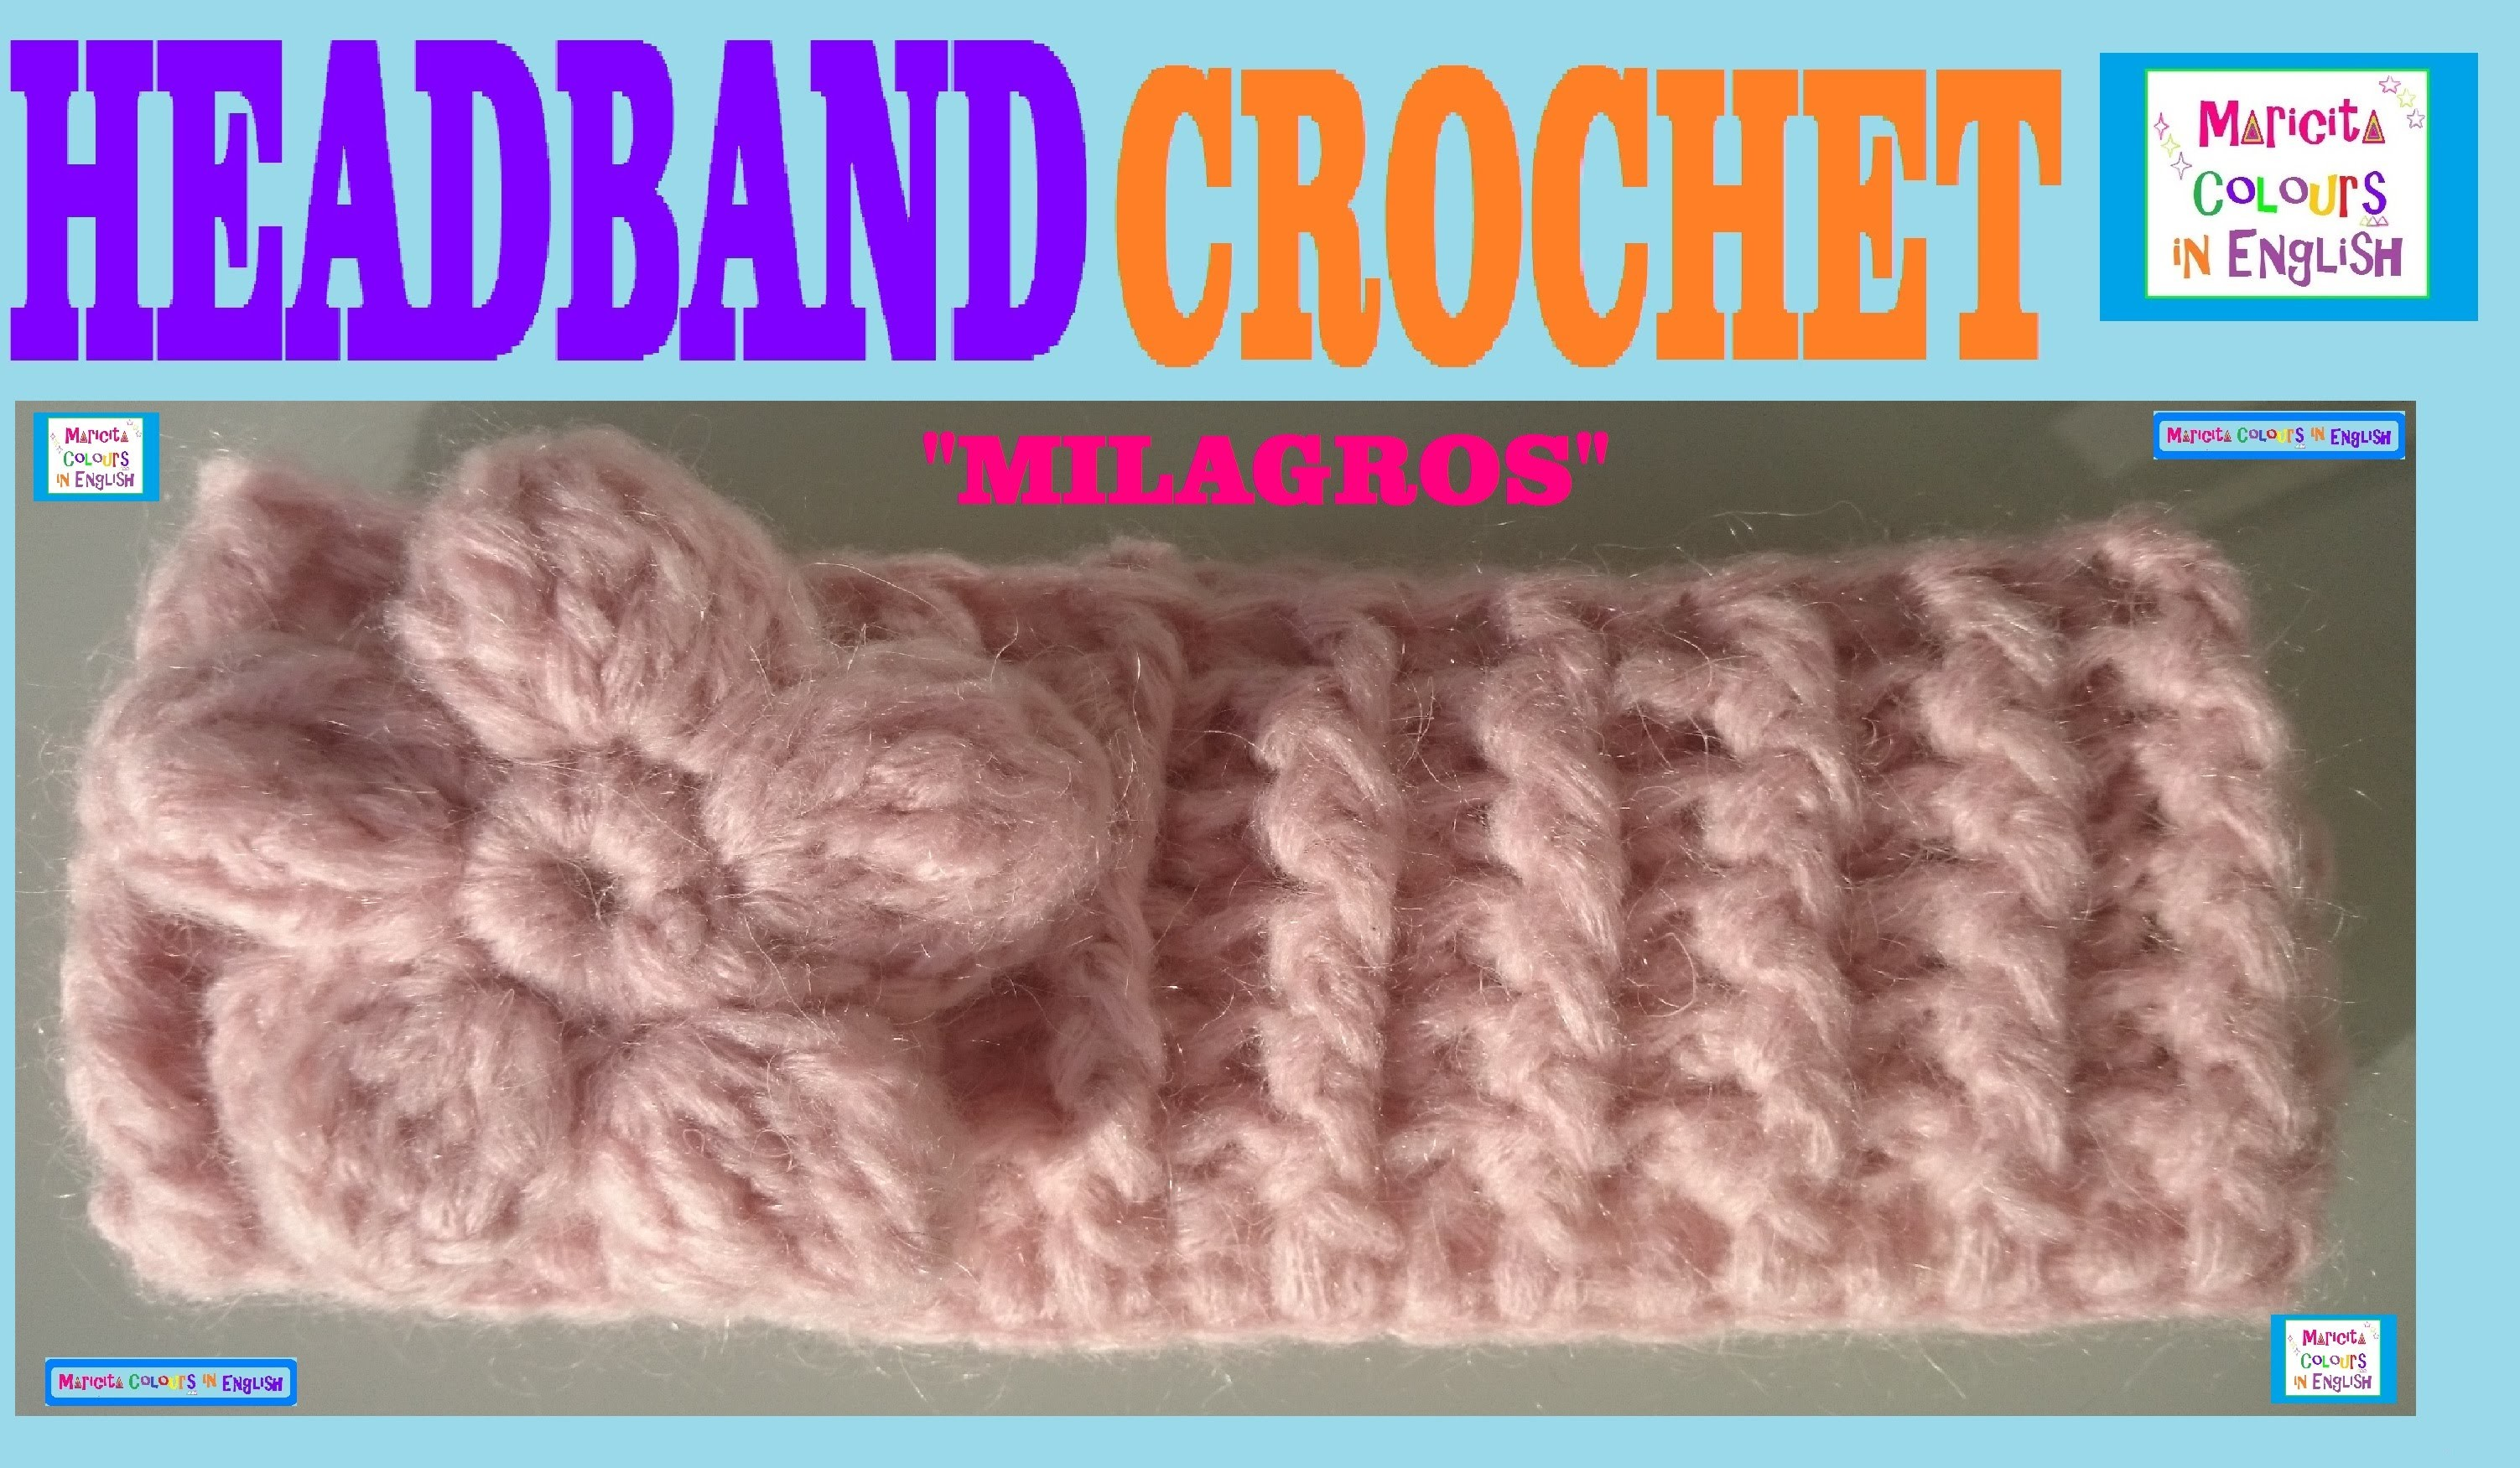 "Headband Band  Crochet Pattern ""Milagros"" by Maricita Colours in English"